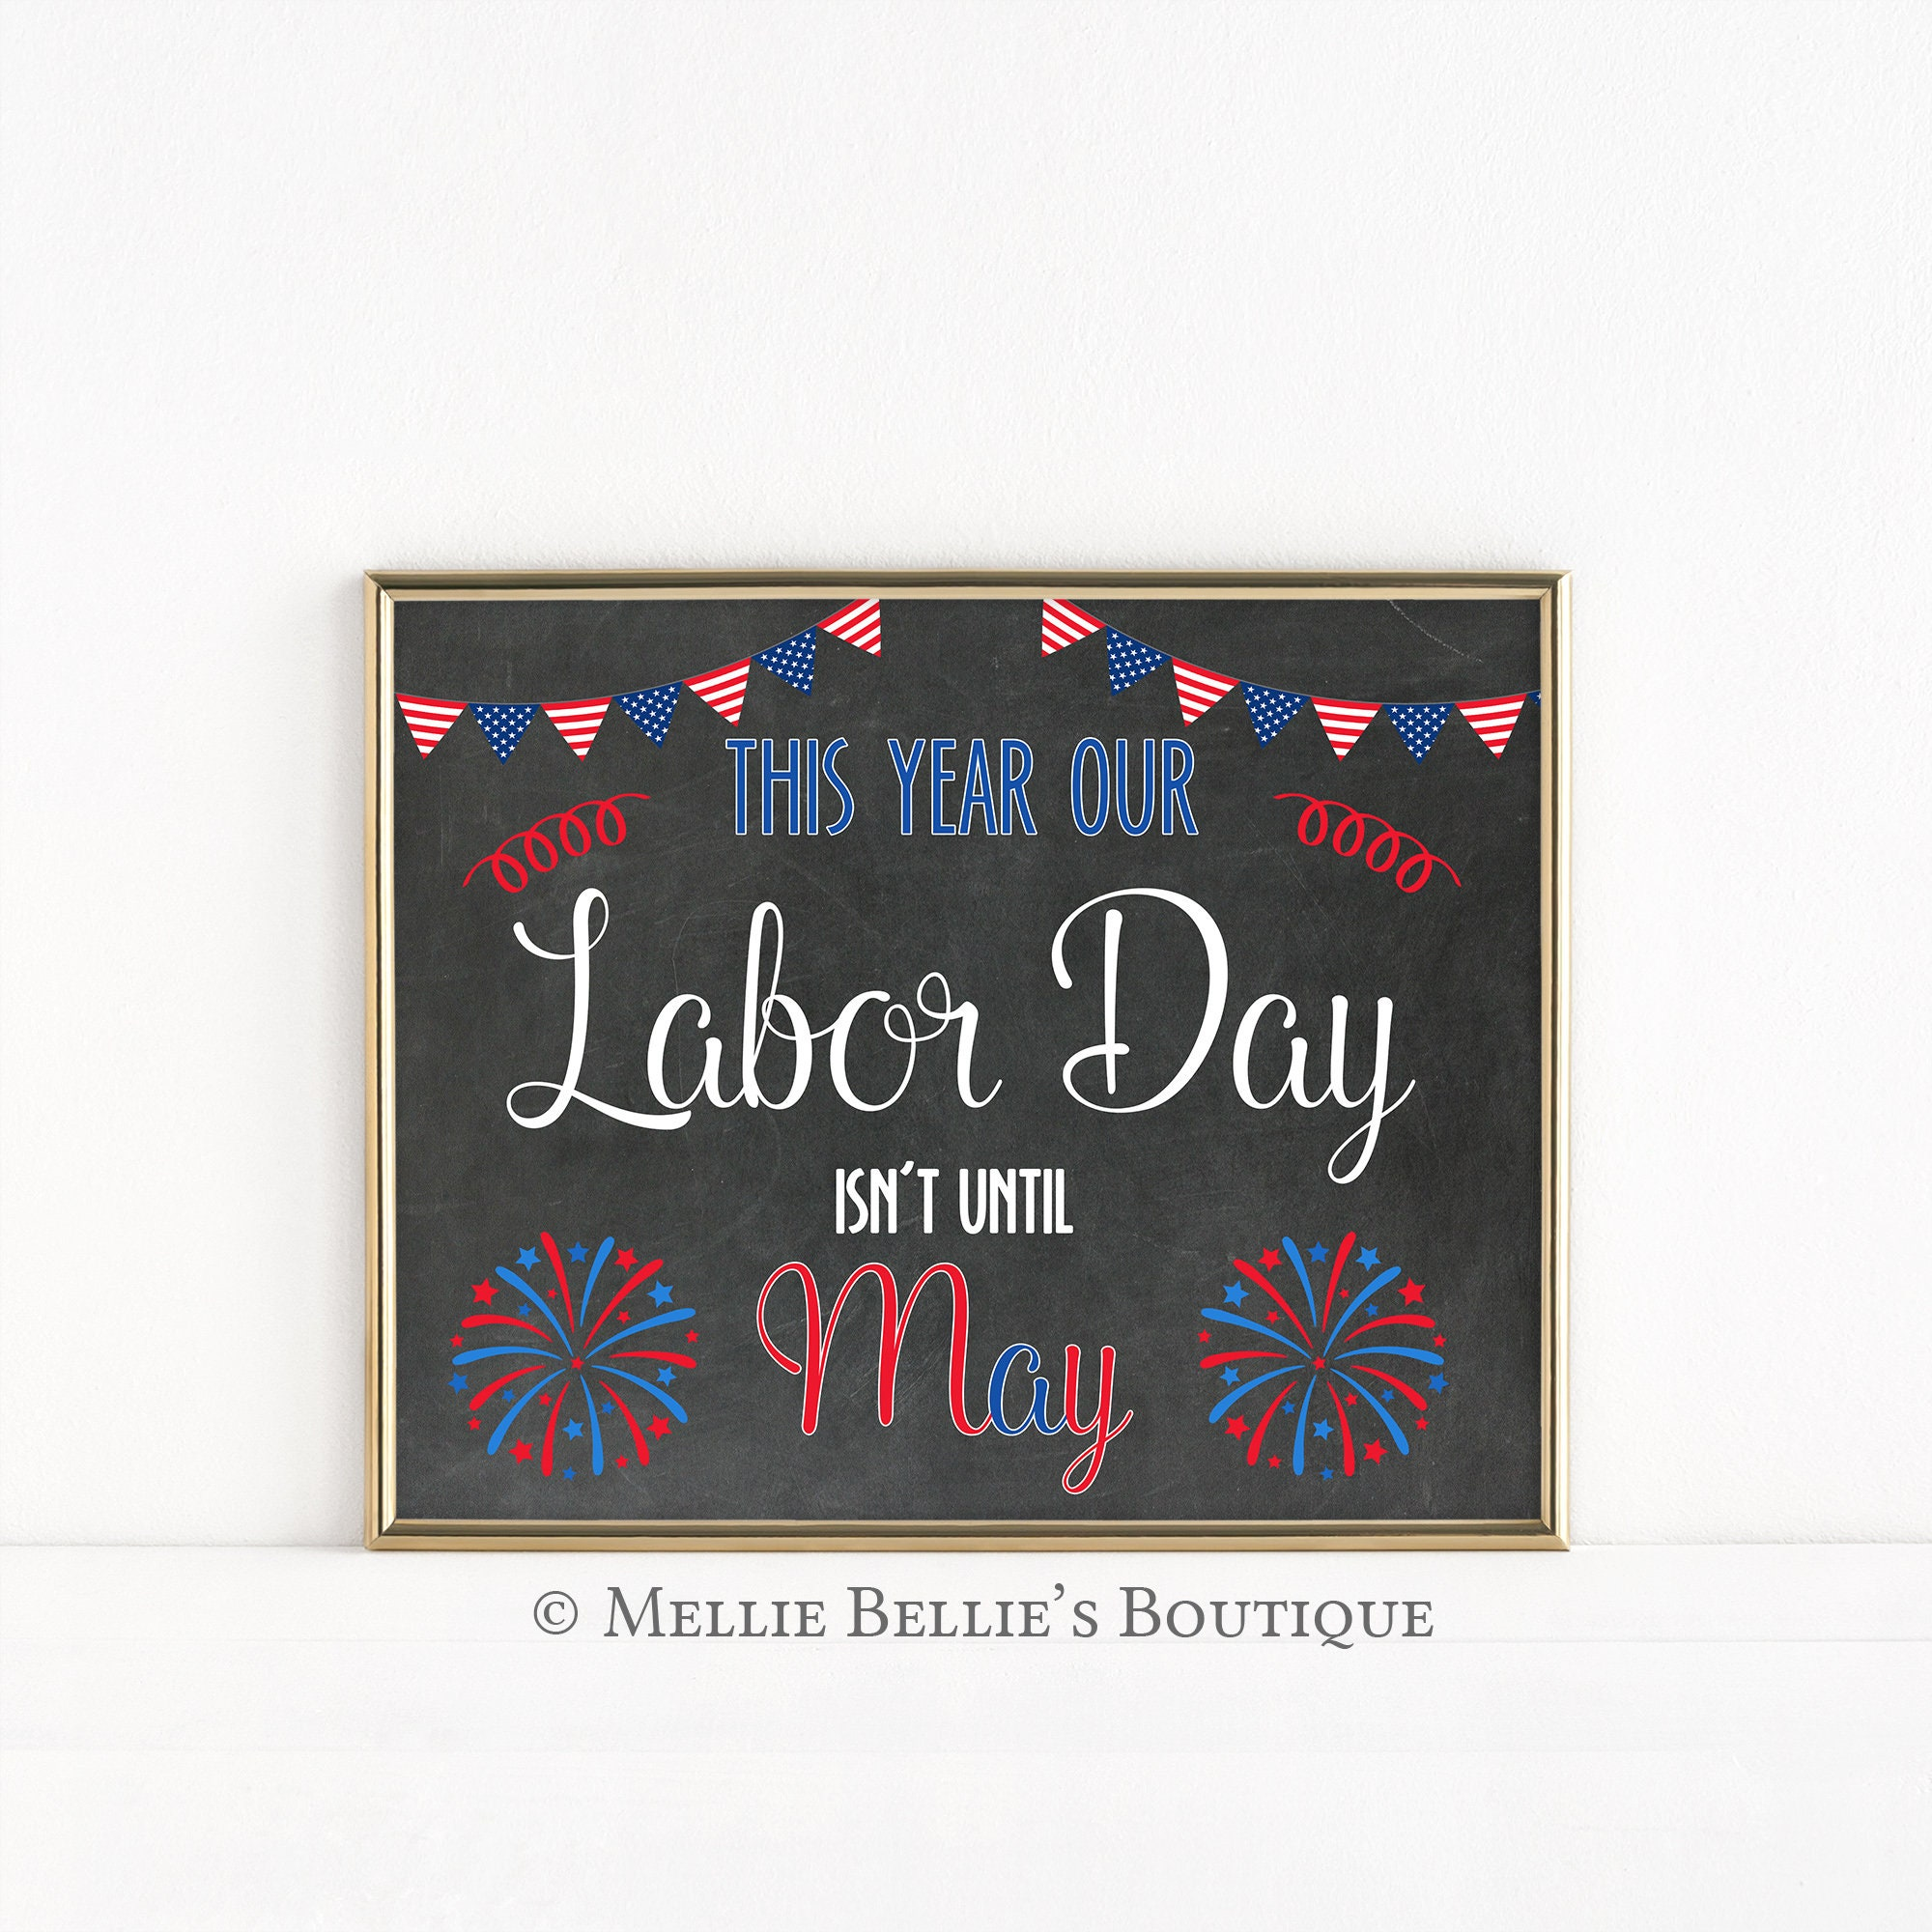 photograph regarding Closed Labor Day Printable Sign called Printable Chalkboard Being pregnant Announcement Signal, Our Labor